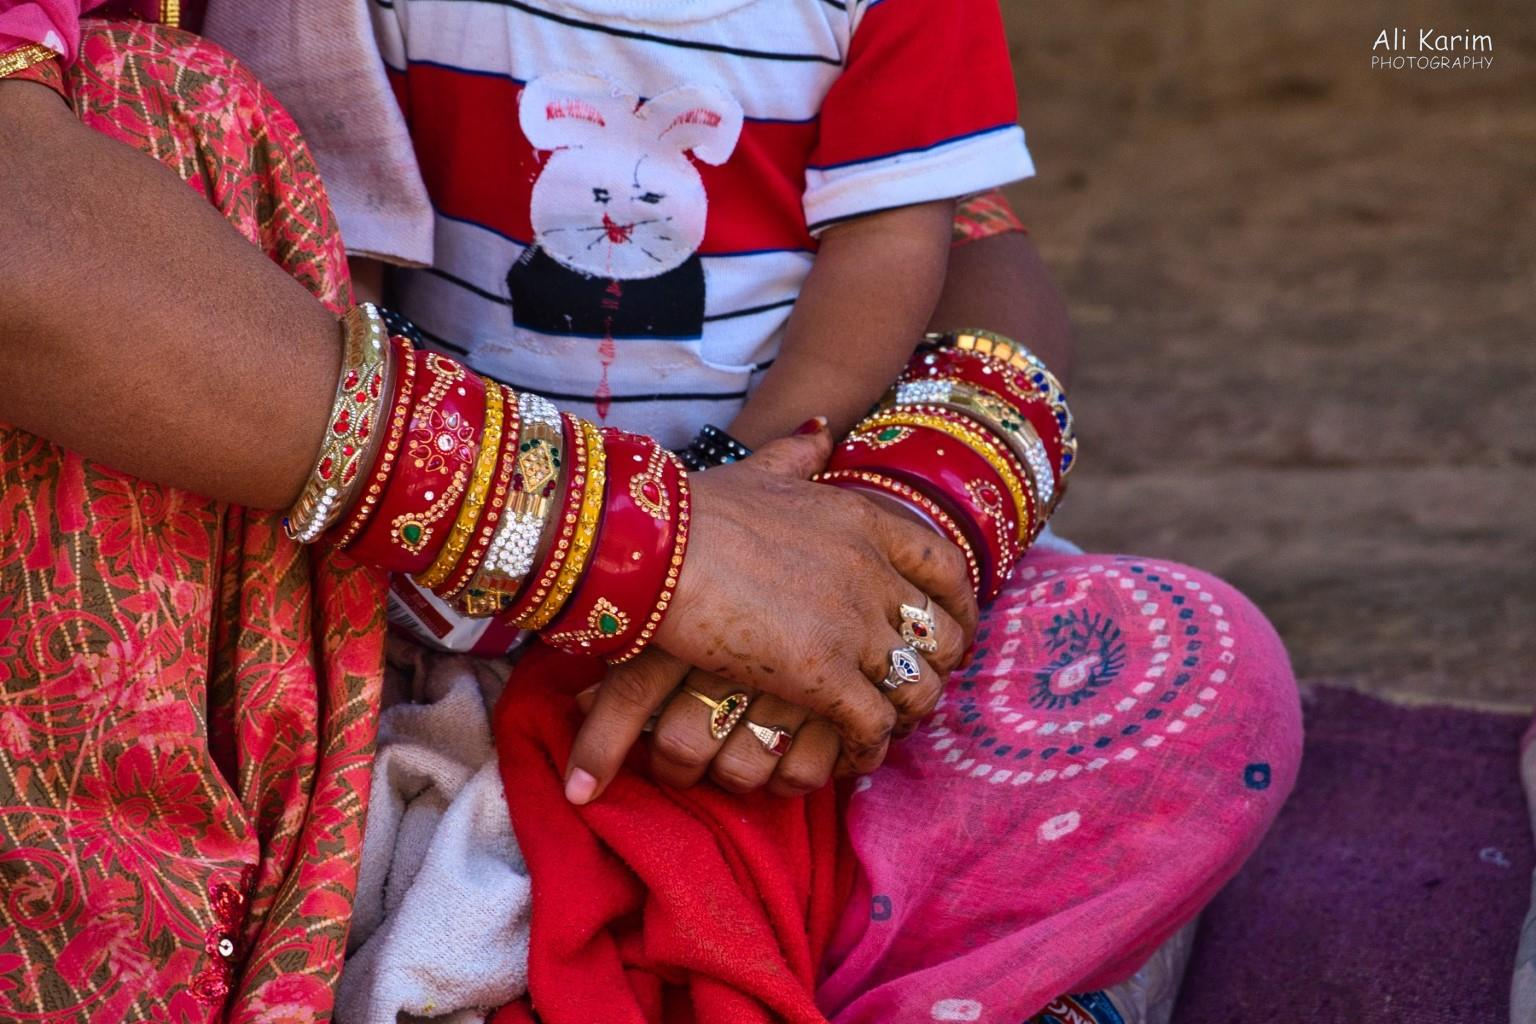 Jodhpur, Rajasthan Traditional jewelry, rings, and fading henna